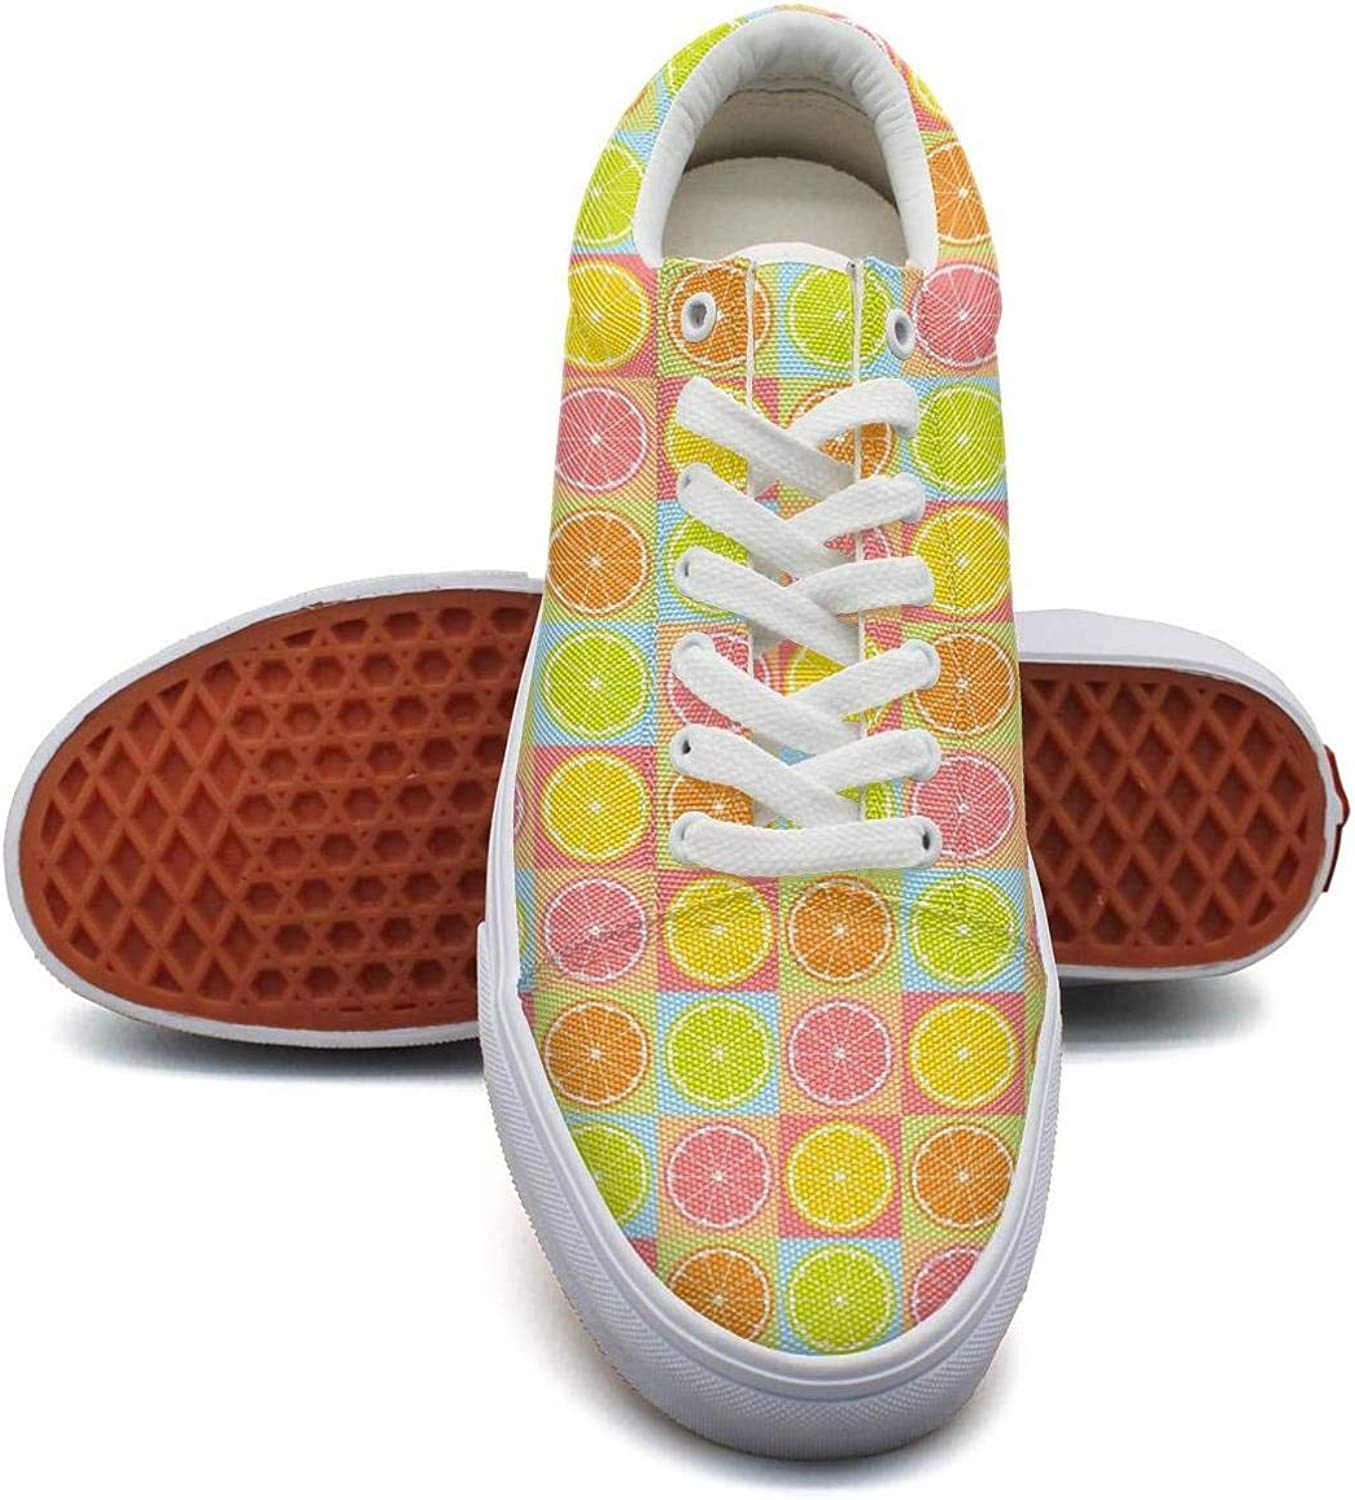 Lemon Watercolor Pattern in Yellow Casual Sneakers for Women Lo-Top Lightweight Running shoes Girls